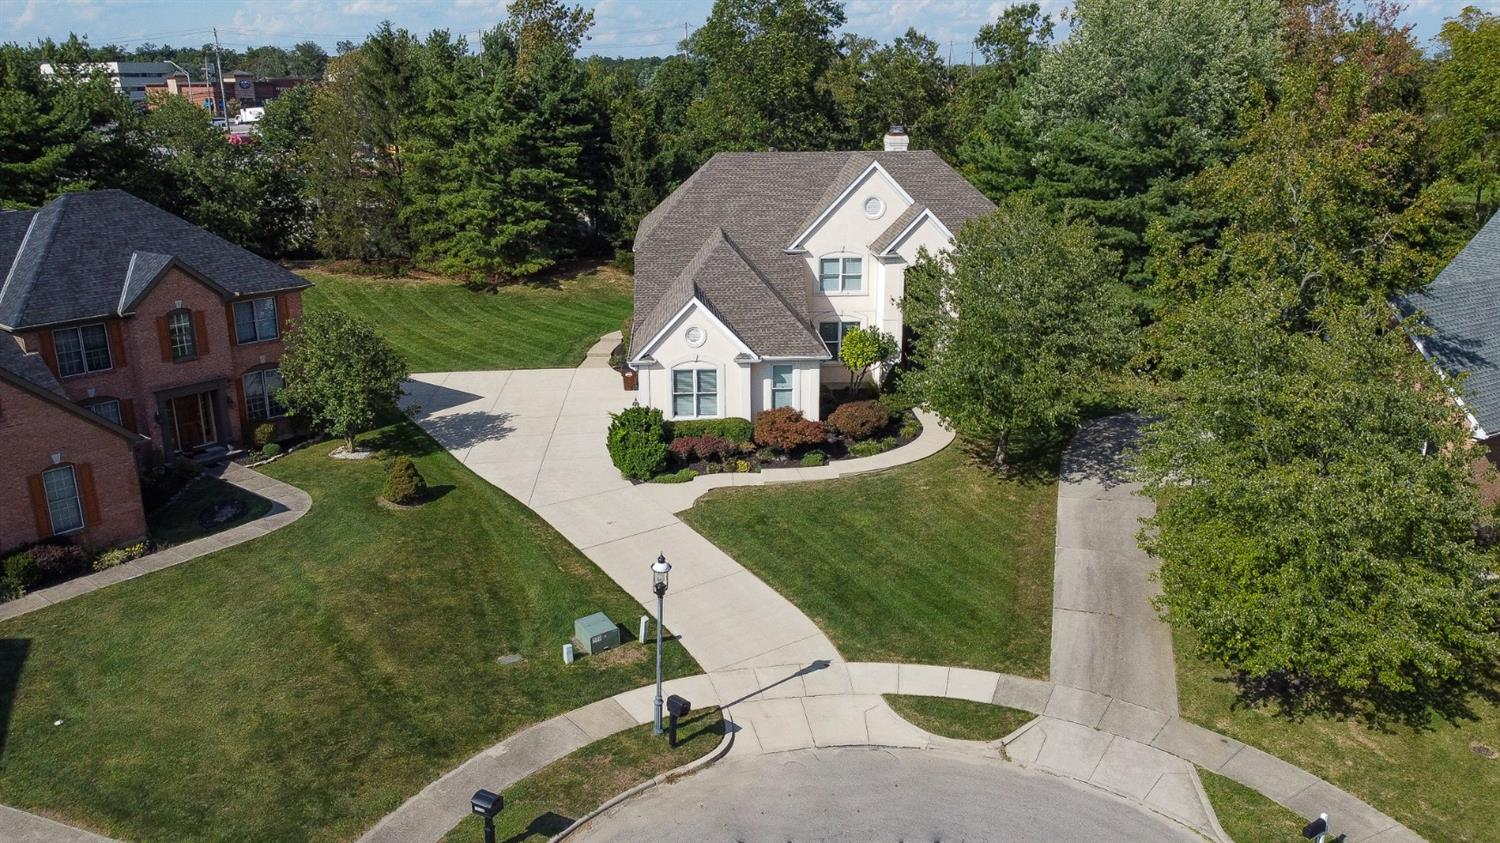 10707 Woodgate Lane, Montgomery, Ohio 45242, 4 Bedrooms Bedrooms, 14 Rooms Rooms,3 BathroomsBathrooms,Single Family Residence,For Sale,Woodgate,1715693